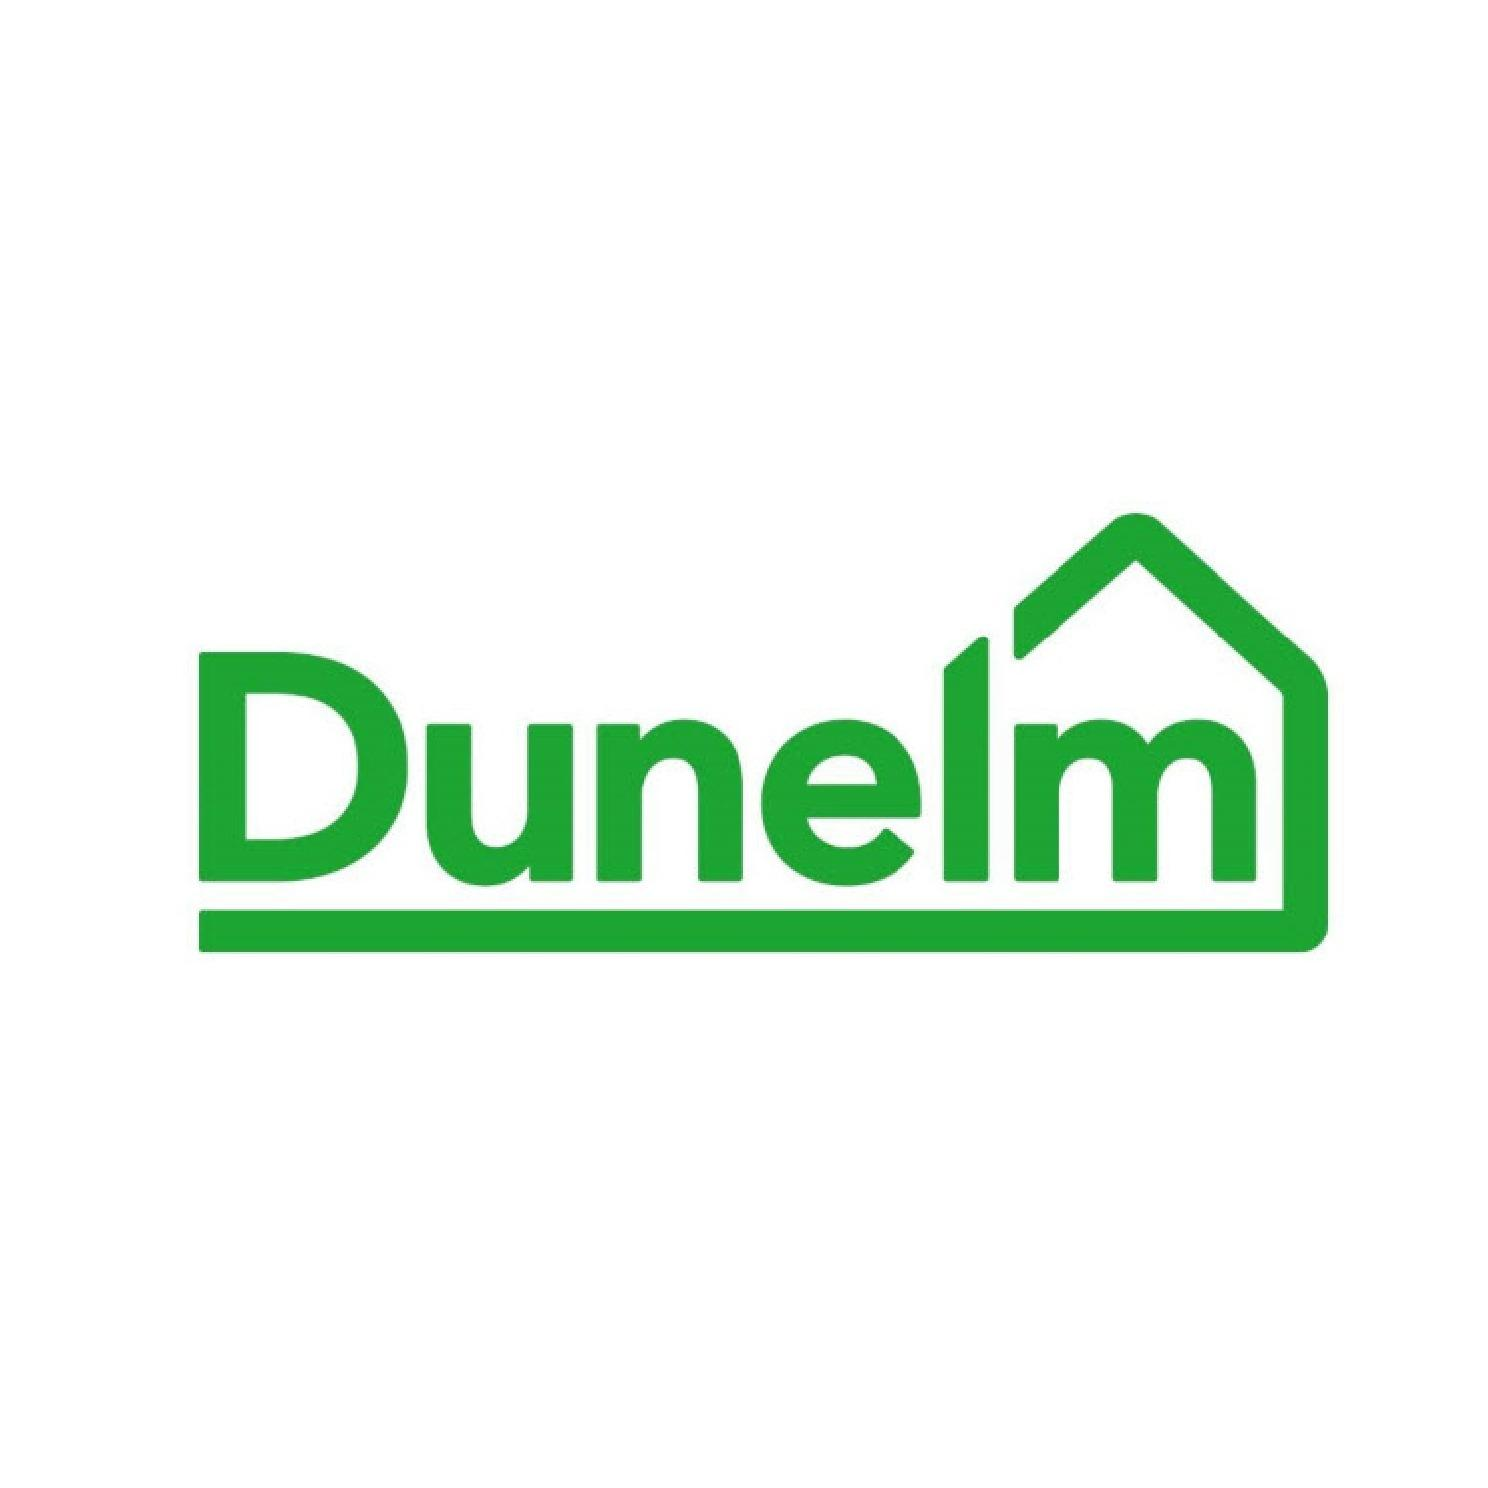 Dunelm - Hartlepool, North Yorkshire TS24 0RN - 01429 800000 | ShowMeLocal.com